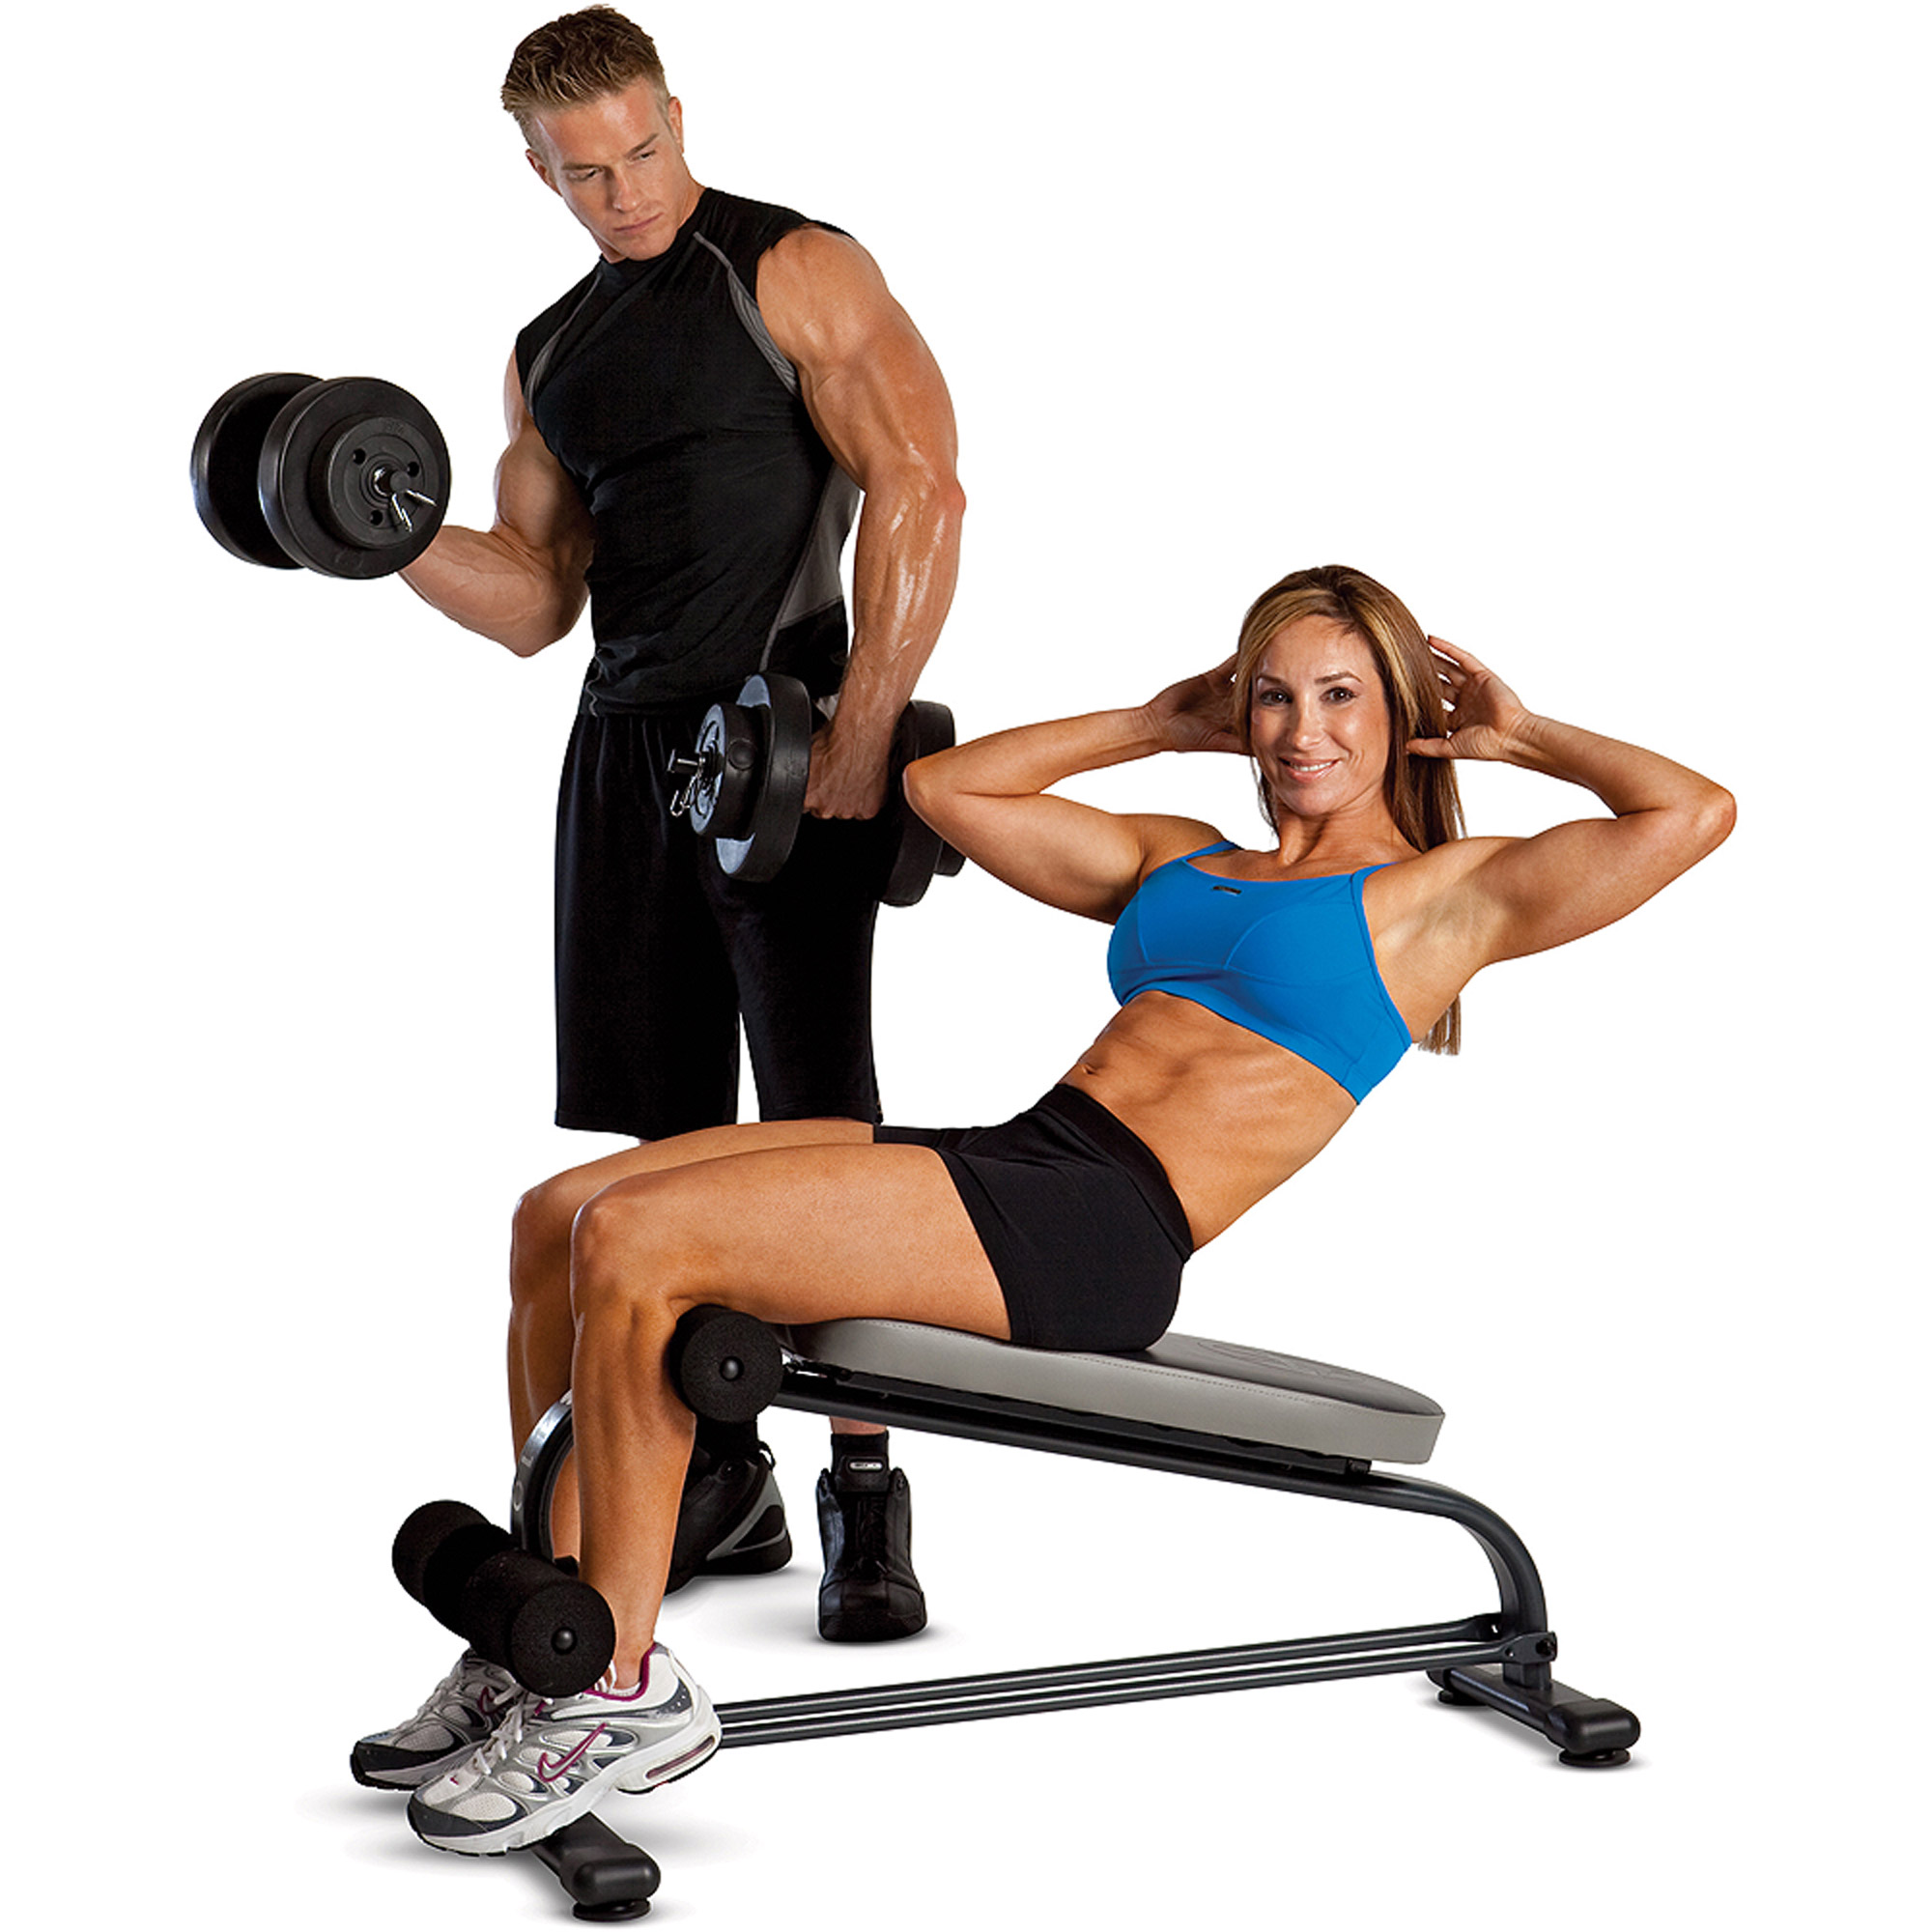 Marcy Crunch Board with 40 lb Dumbbell Set: SB-410 VB-40 by Impex